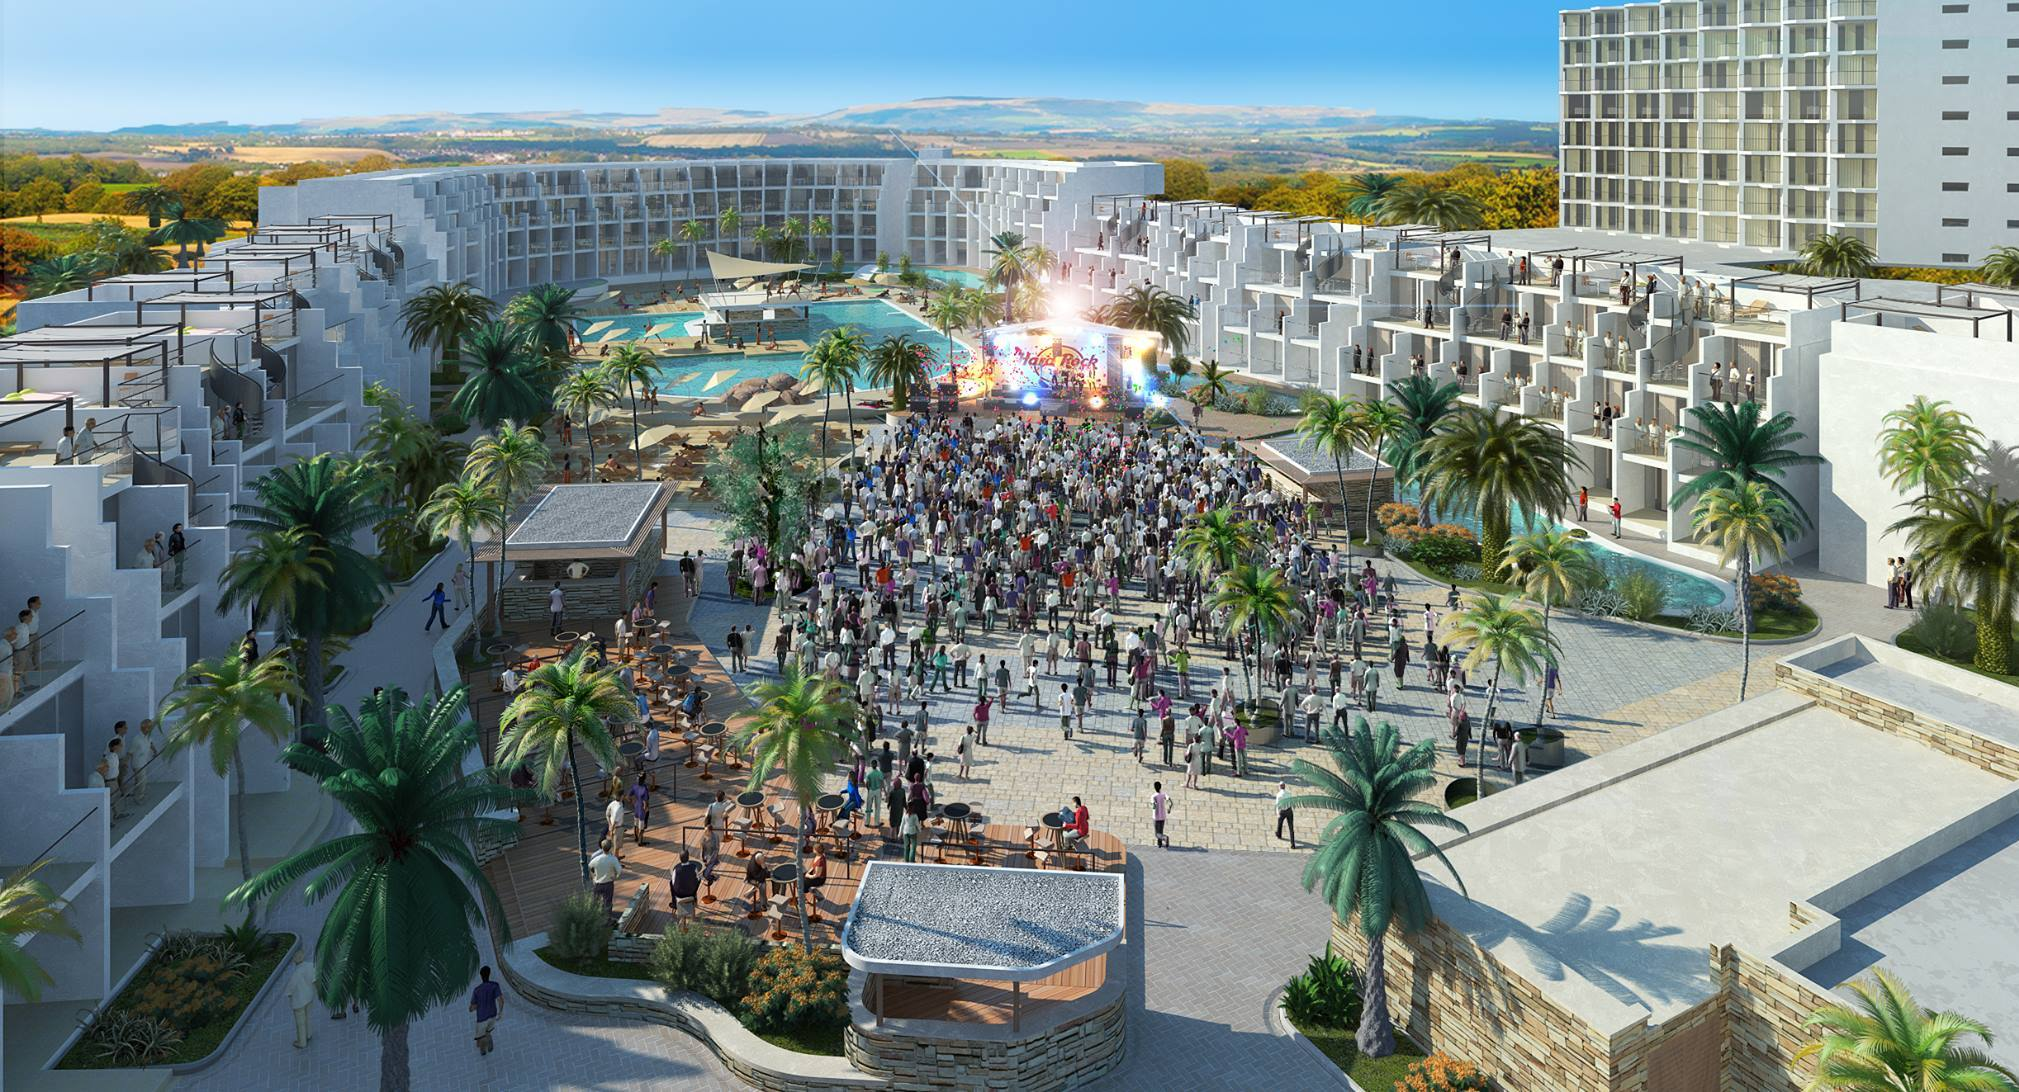 News Ims 2014 Moves To Hard Rock Hotel Ibiza Ibiza Spotlight